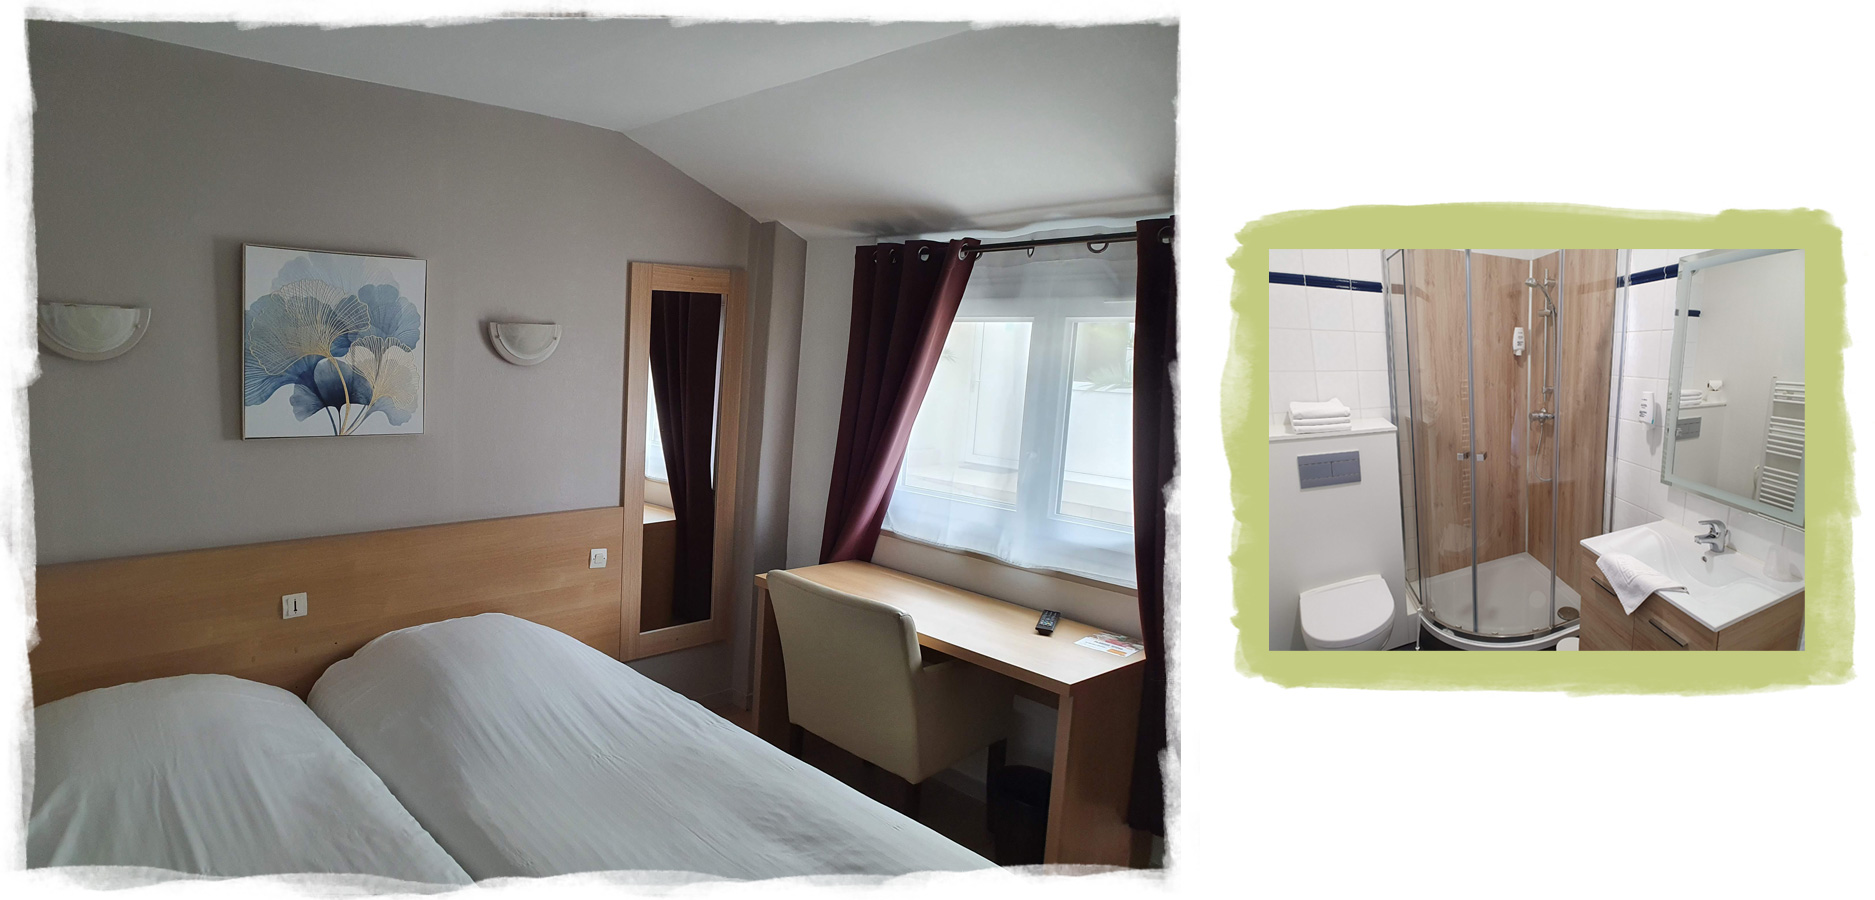 Room with a desk and a bathroom with shower